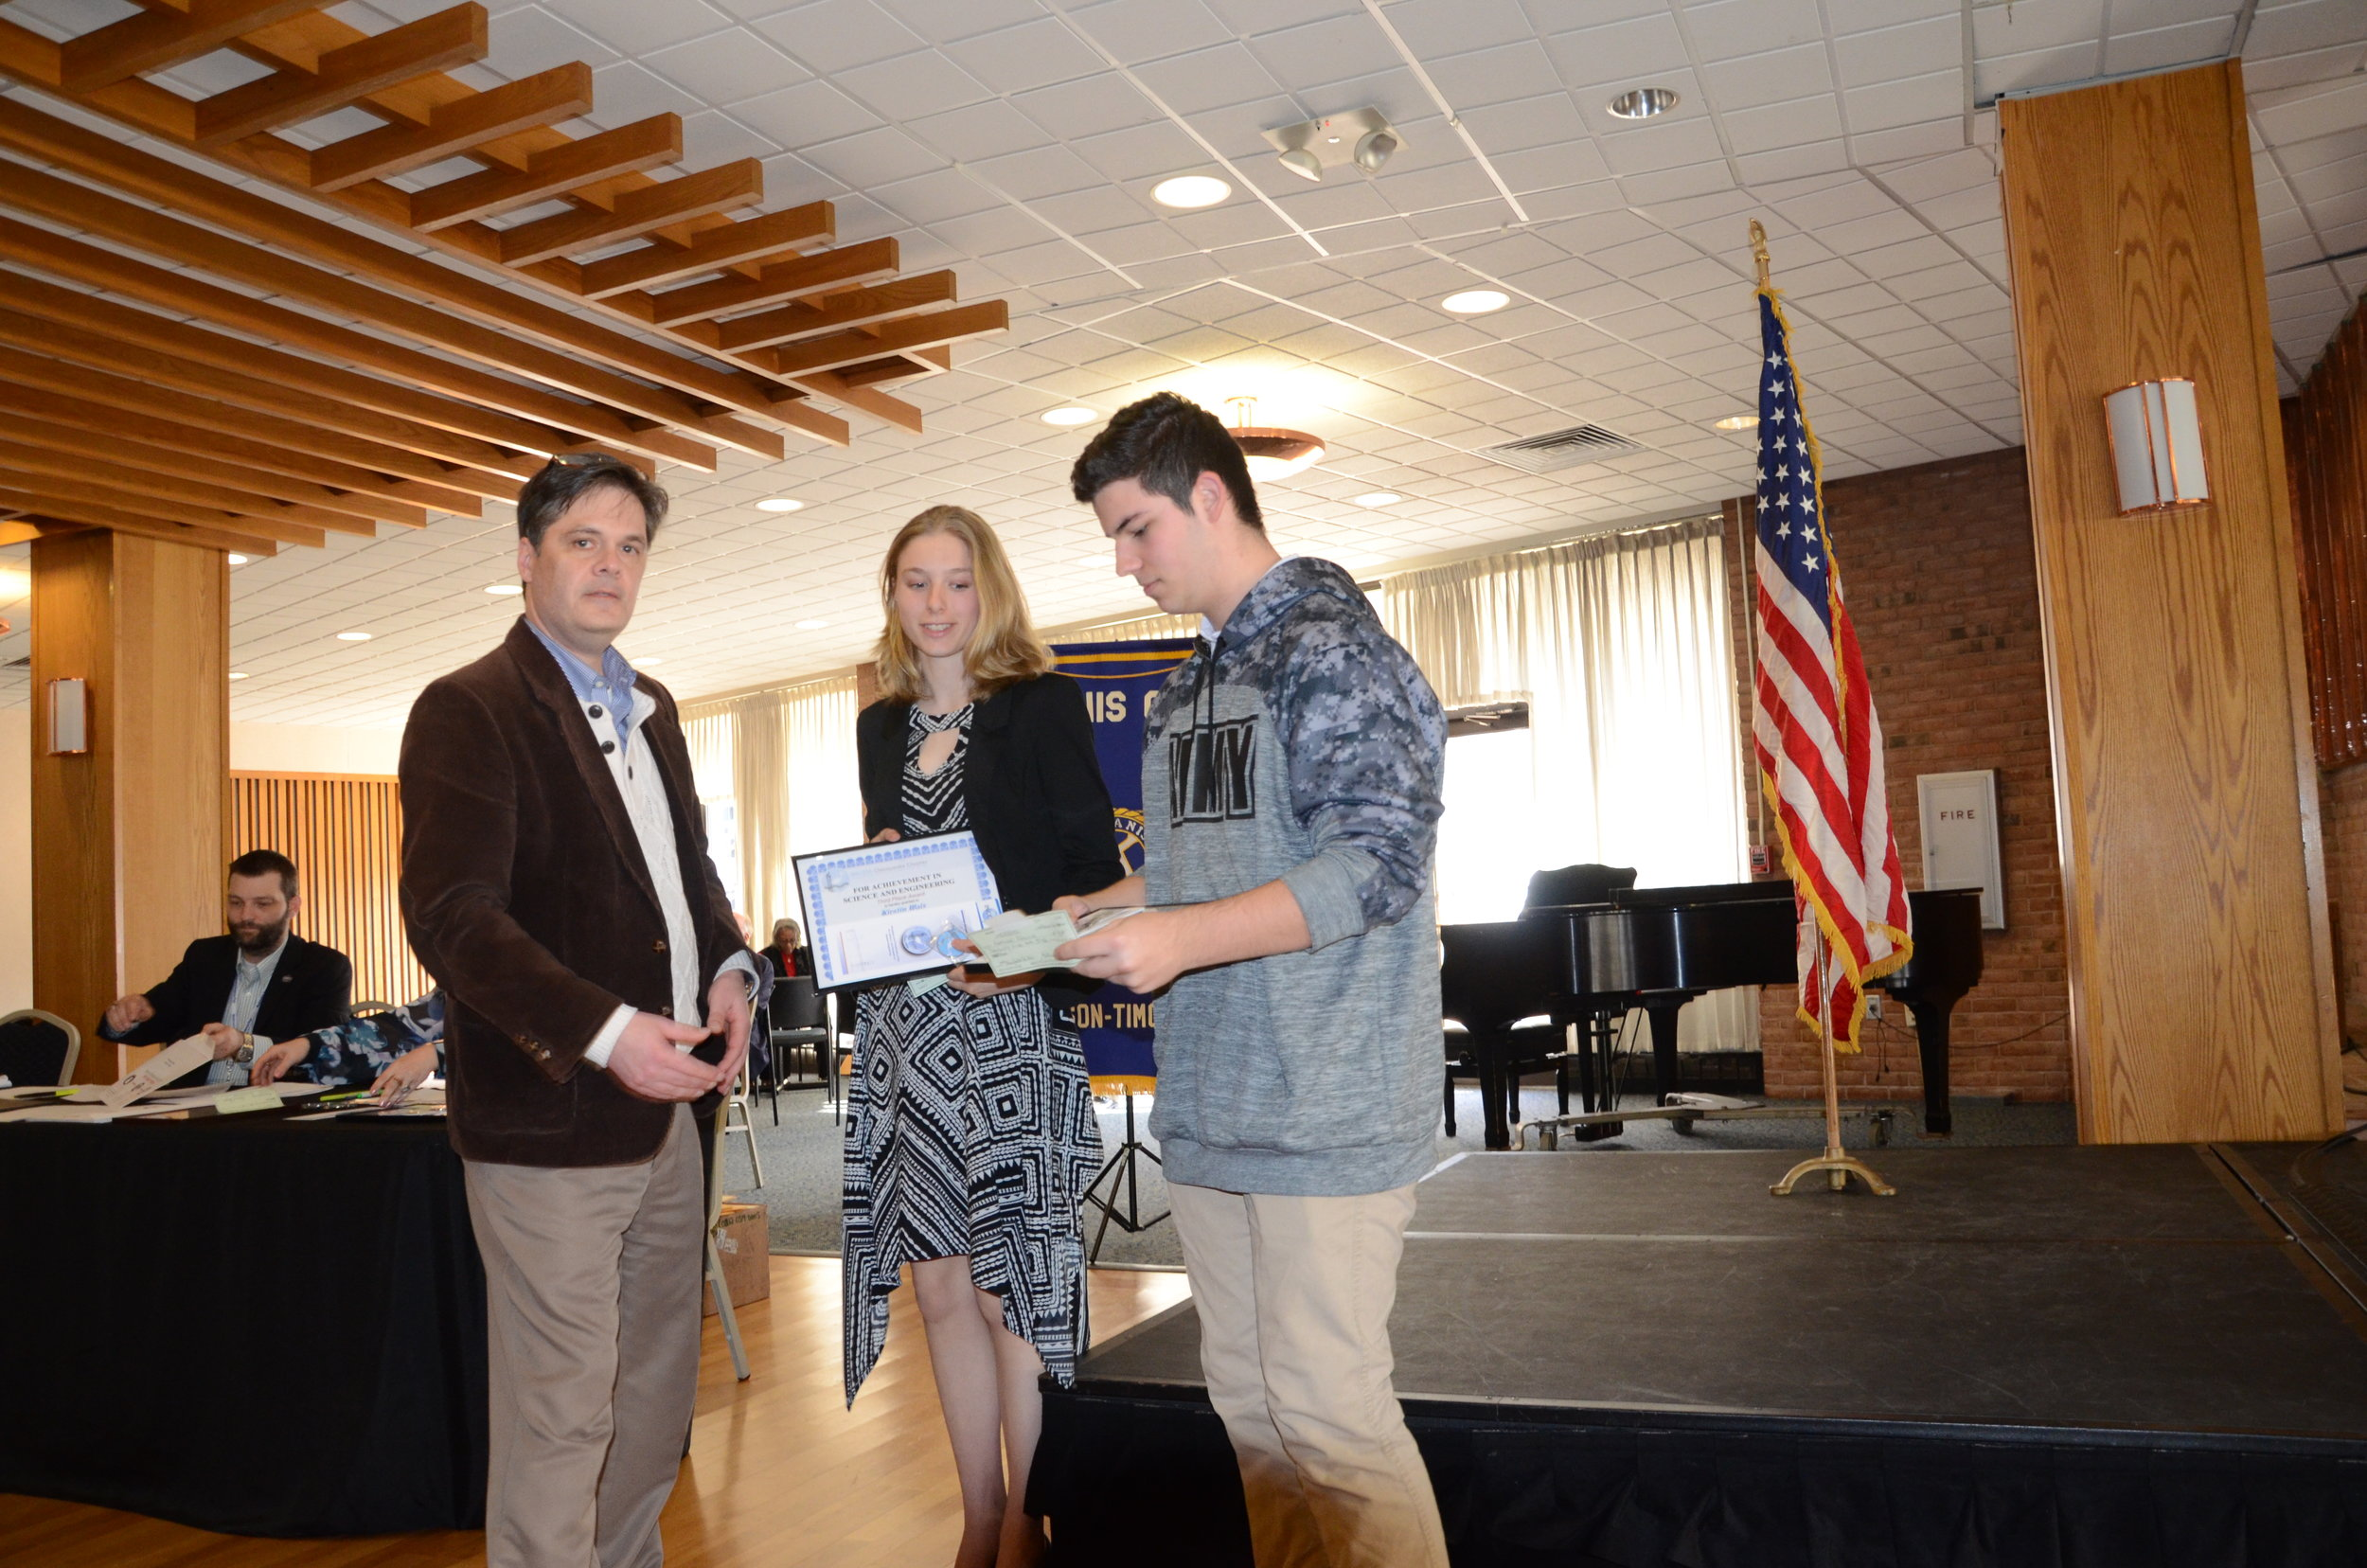 3rd Place, Kirstin Walz & Nathan Duciuk: Spill Resistant Lid for Disposable Coffee Cups